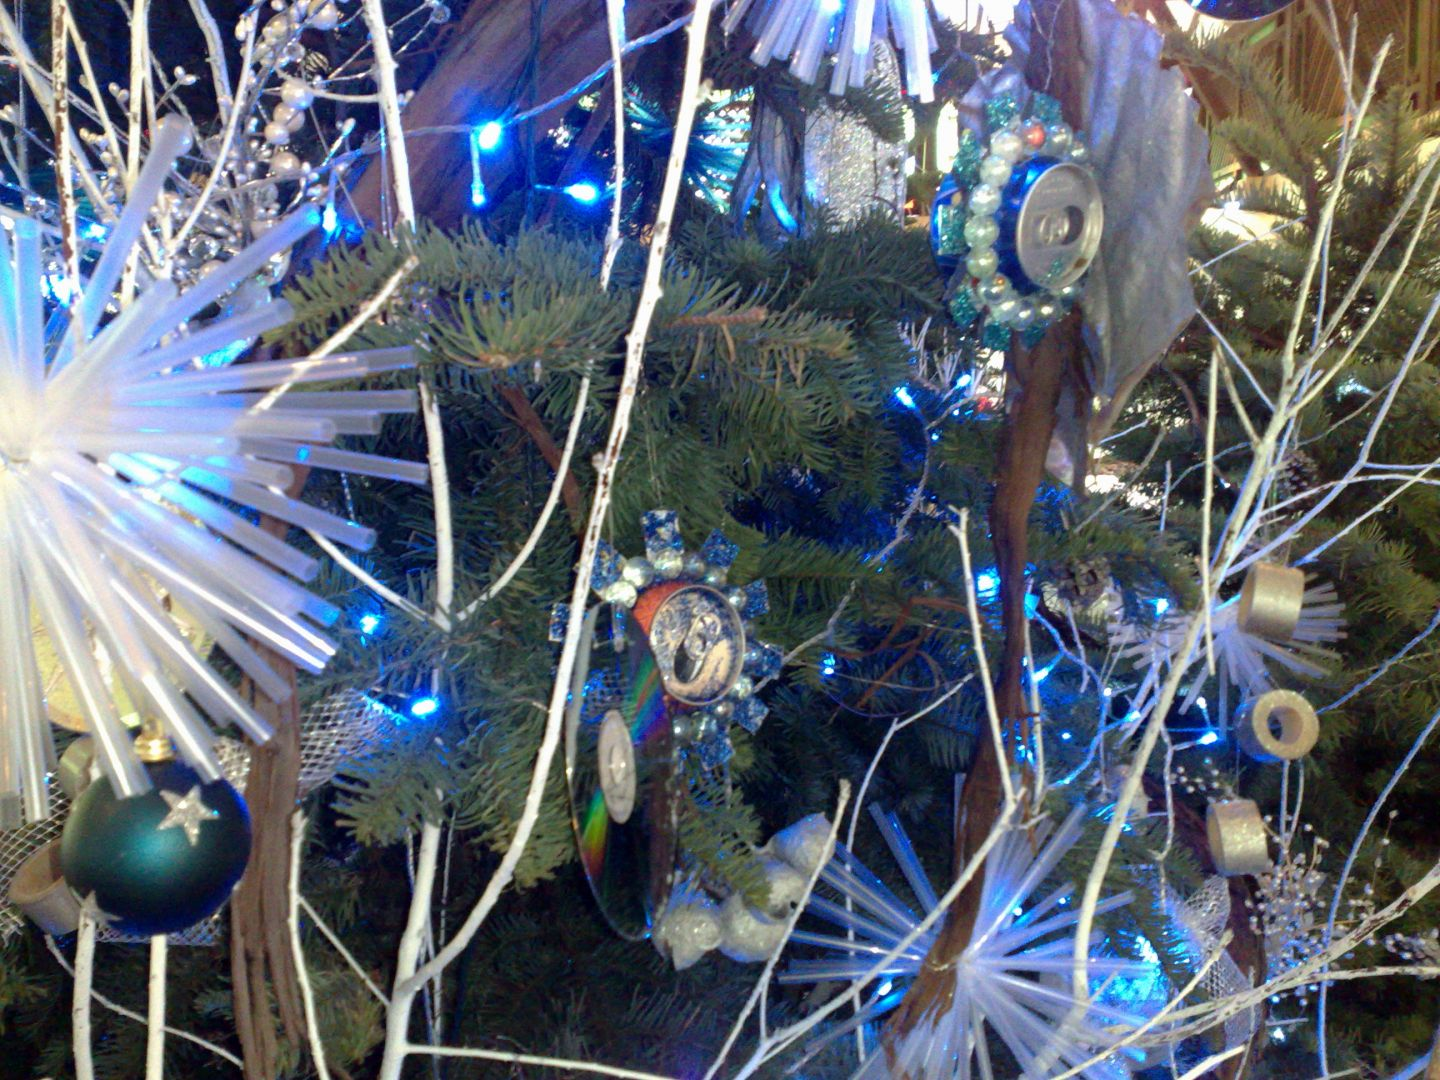 Making christmas ornaments out of recycled materials - Christmas Decorations To Make Out Of Recycled Material Photo 28